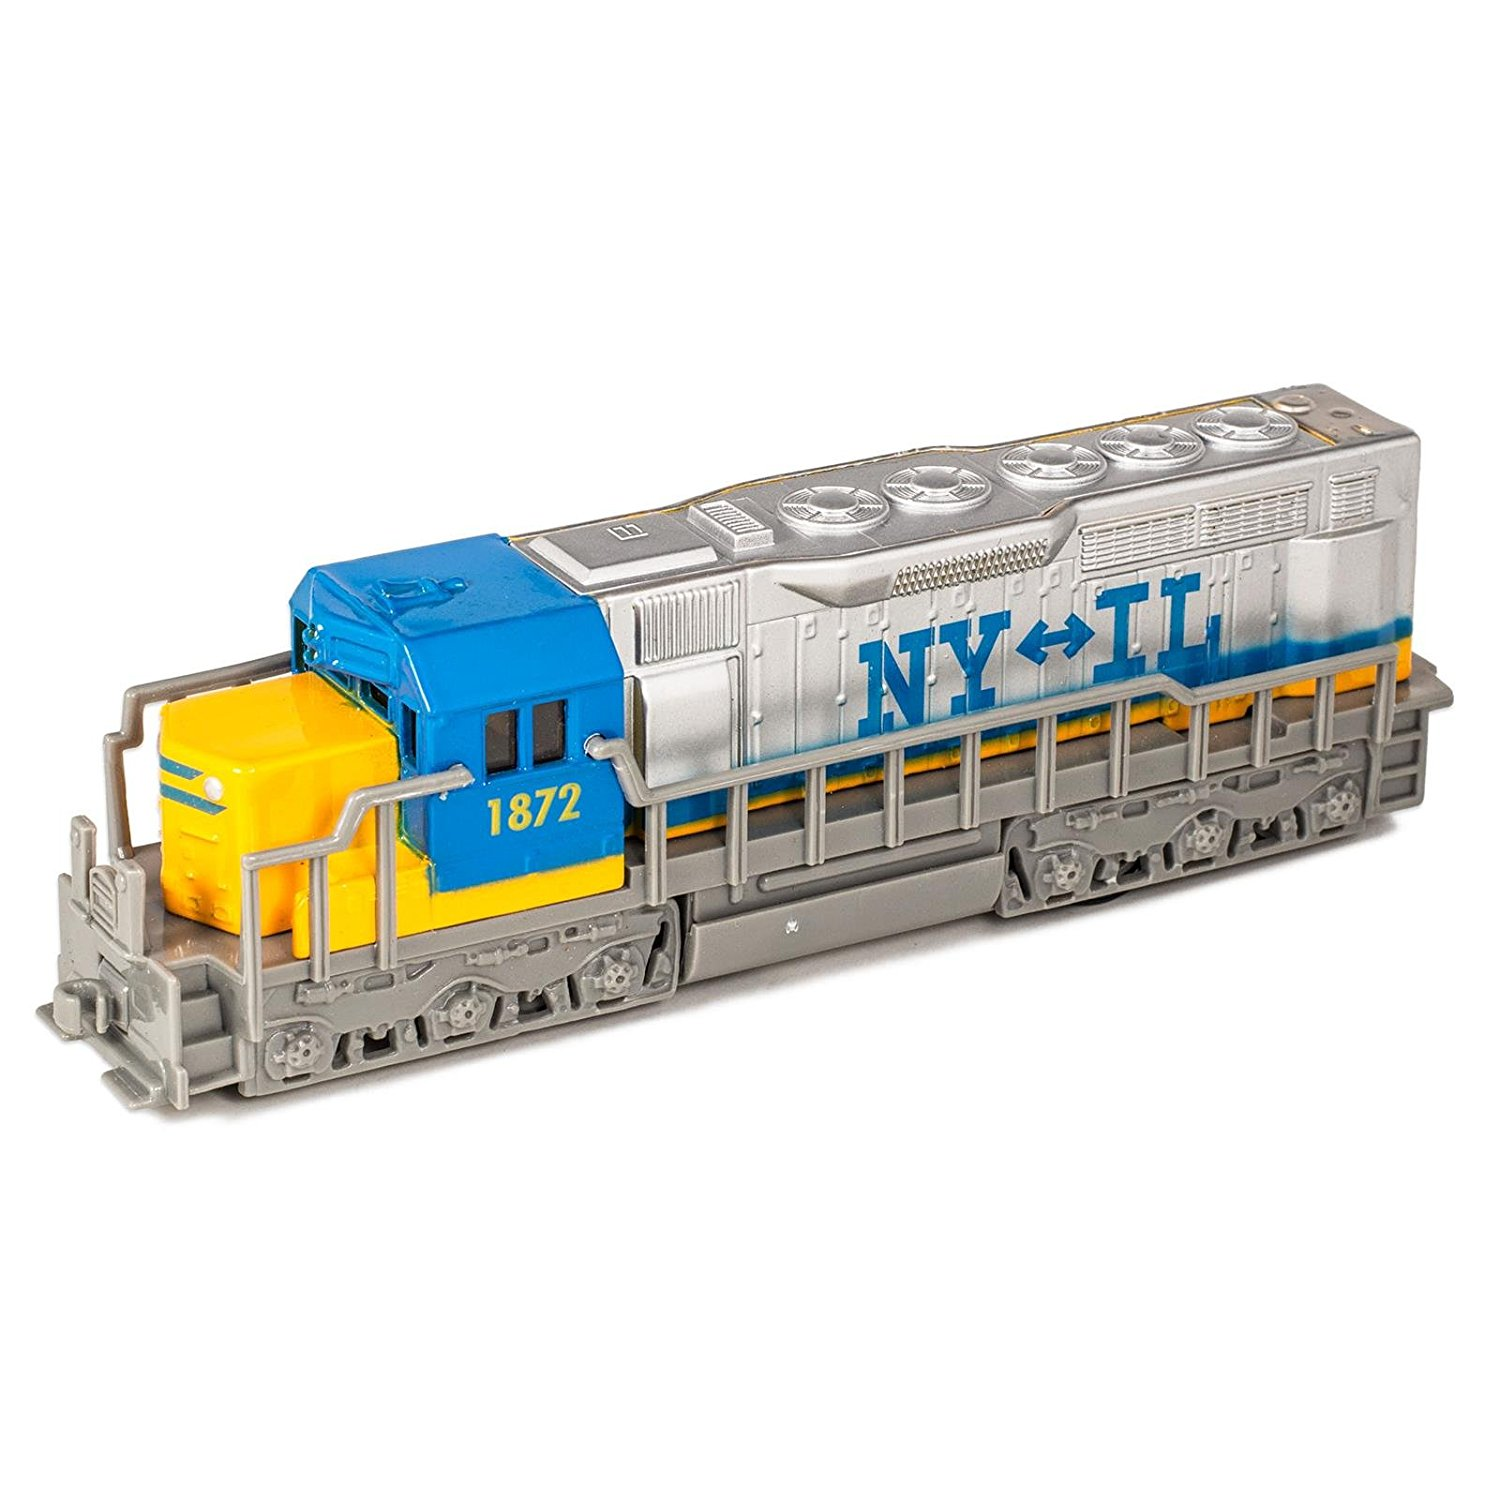 7 Blue Die Cast Freight Train Locomotive Toy with Pull Back Action by Kinsmart